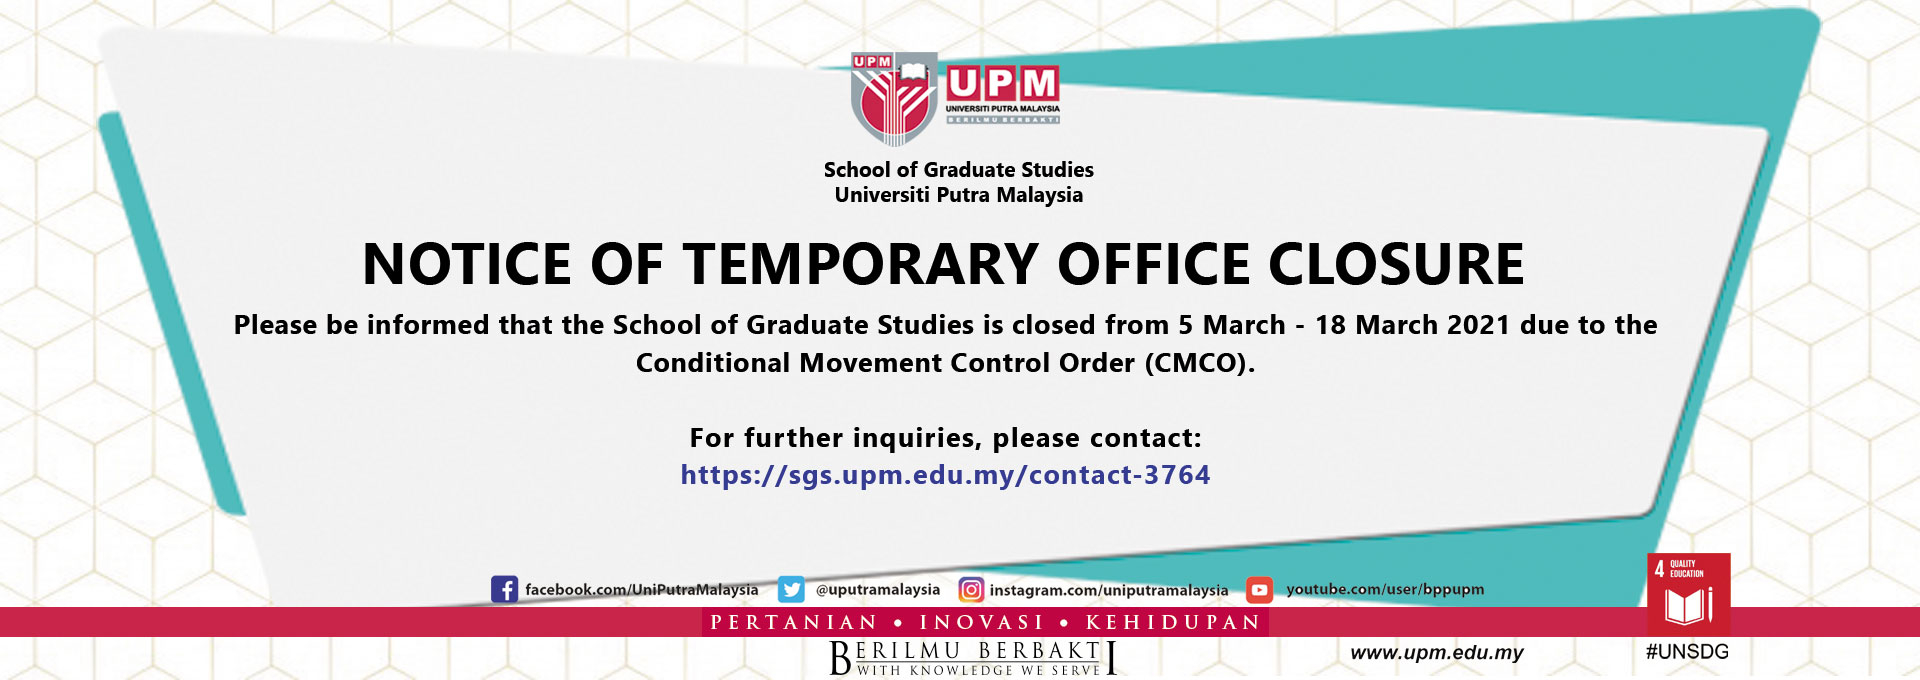 NOTICE OF TEMPORARY OFFICE CLOSURE